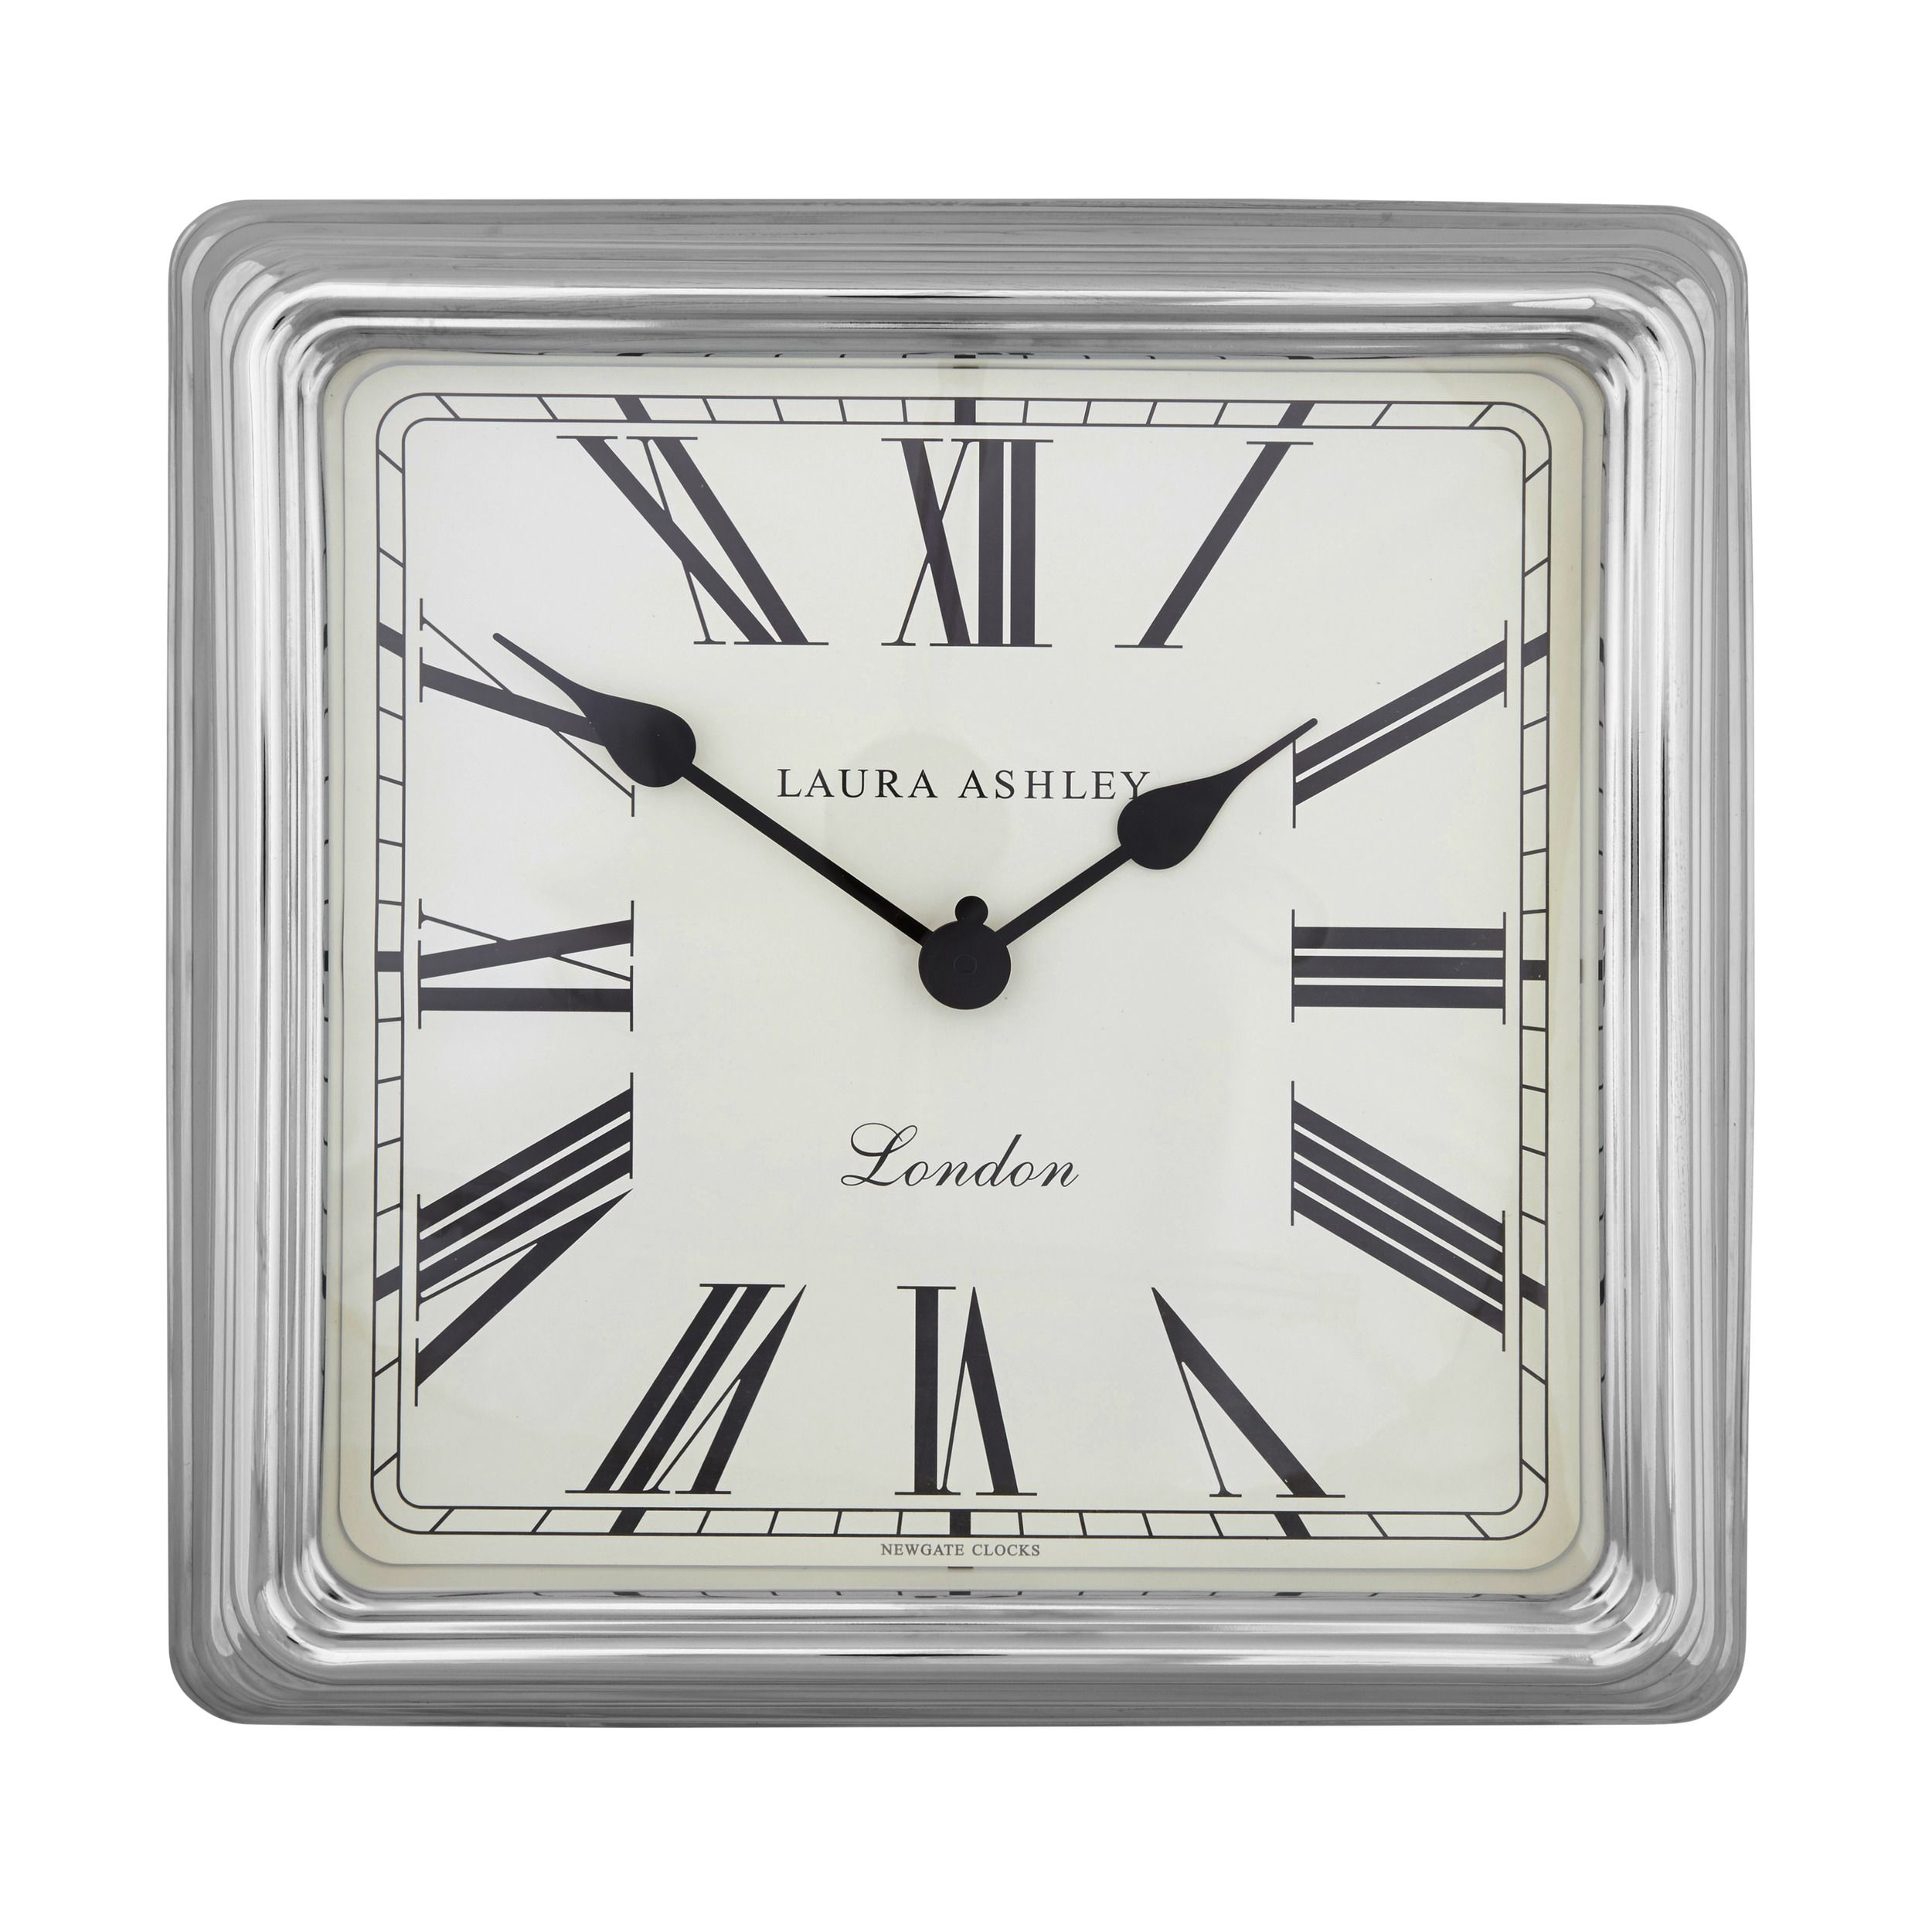 Square silver finish wall clock at laura ashley time pinterest square silver finish wall clock at laura ashley amipublicfo Choice Image